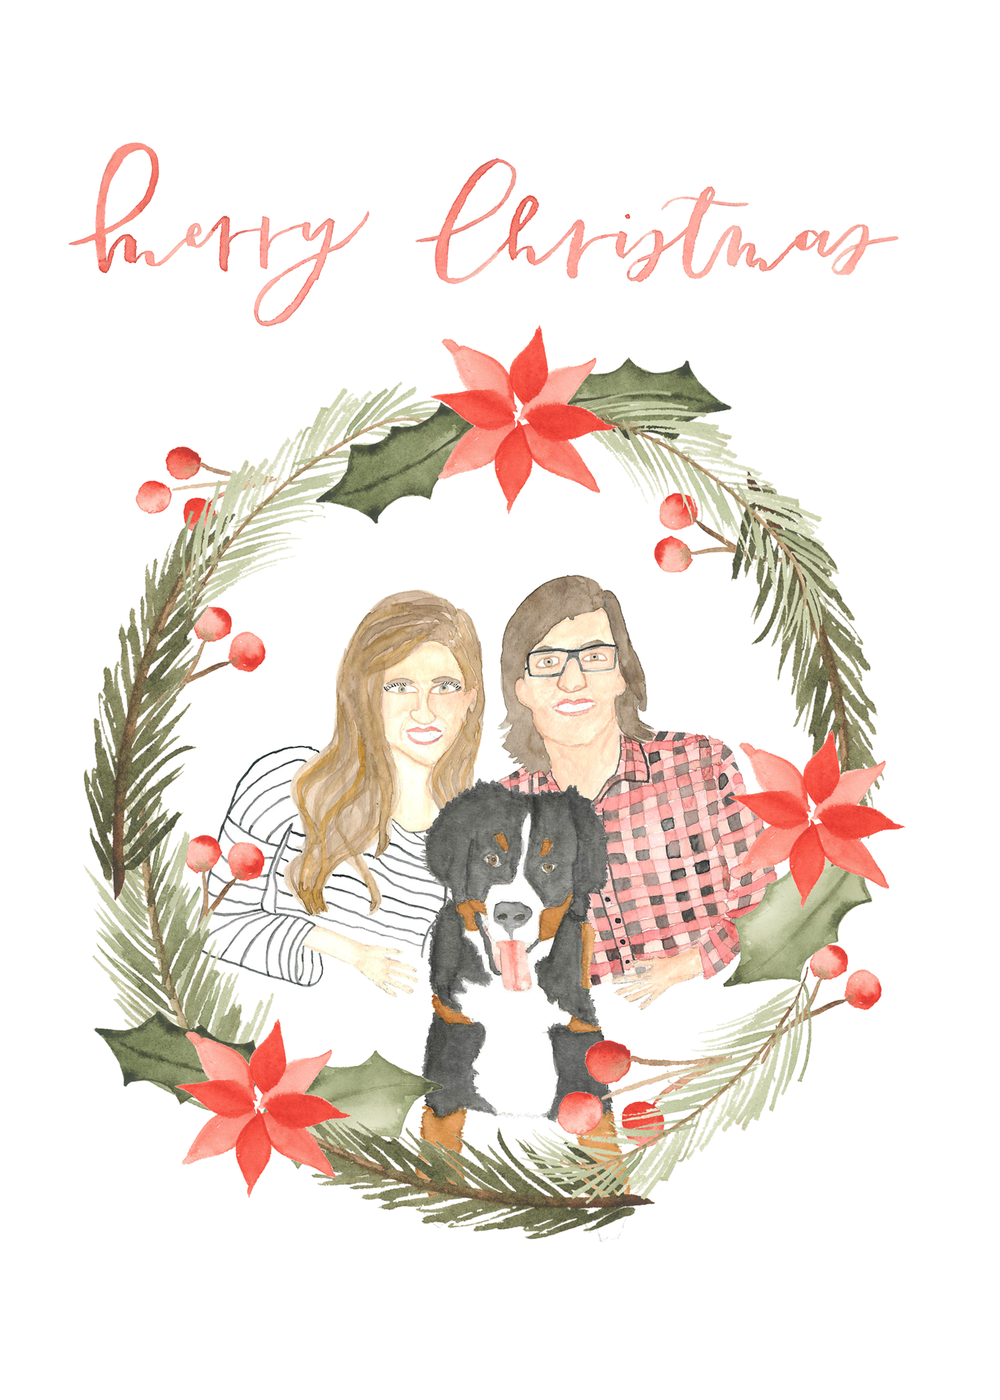 ChristmasCardSample1.png